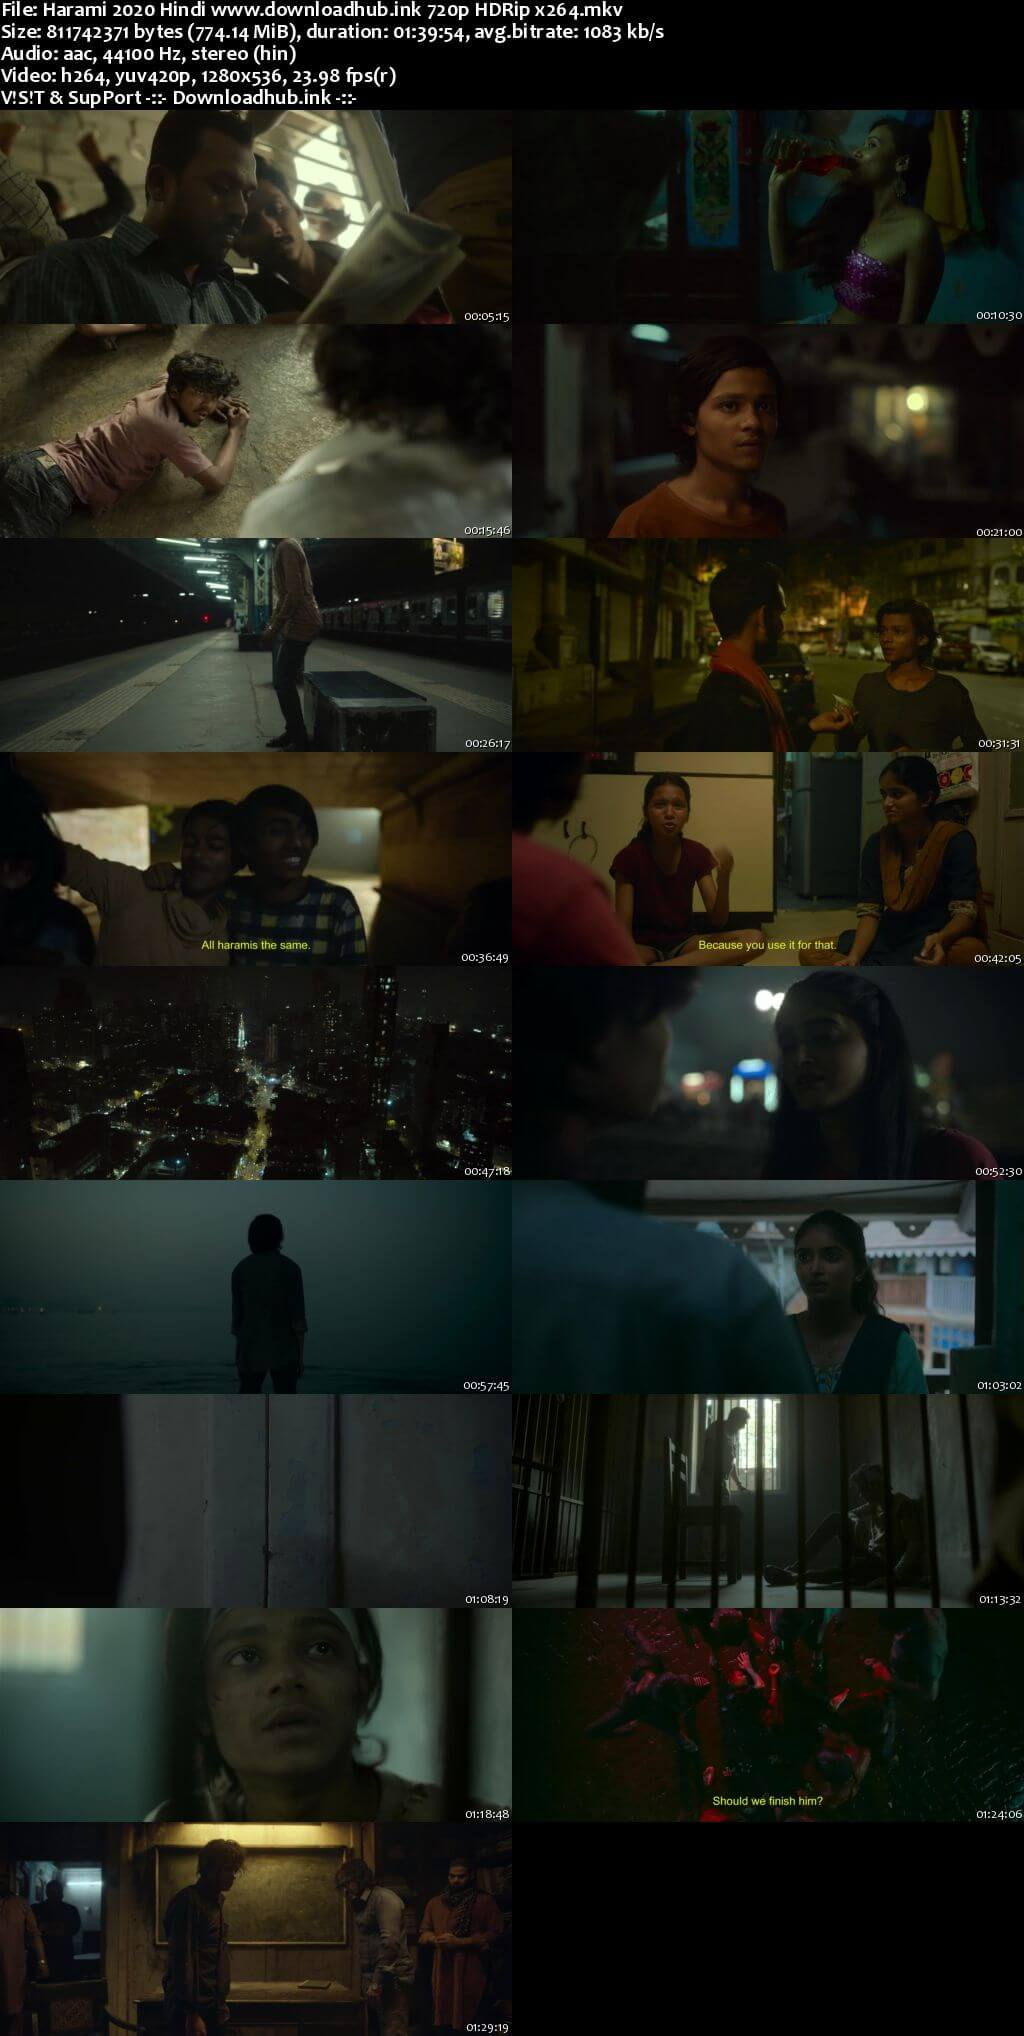 Harami 2020 Hindi 720p HDRip x264